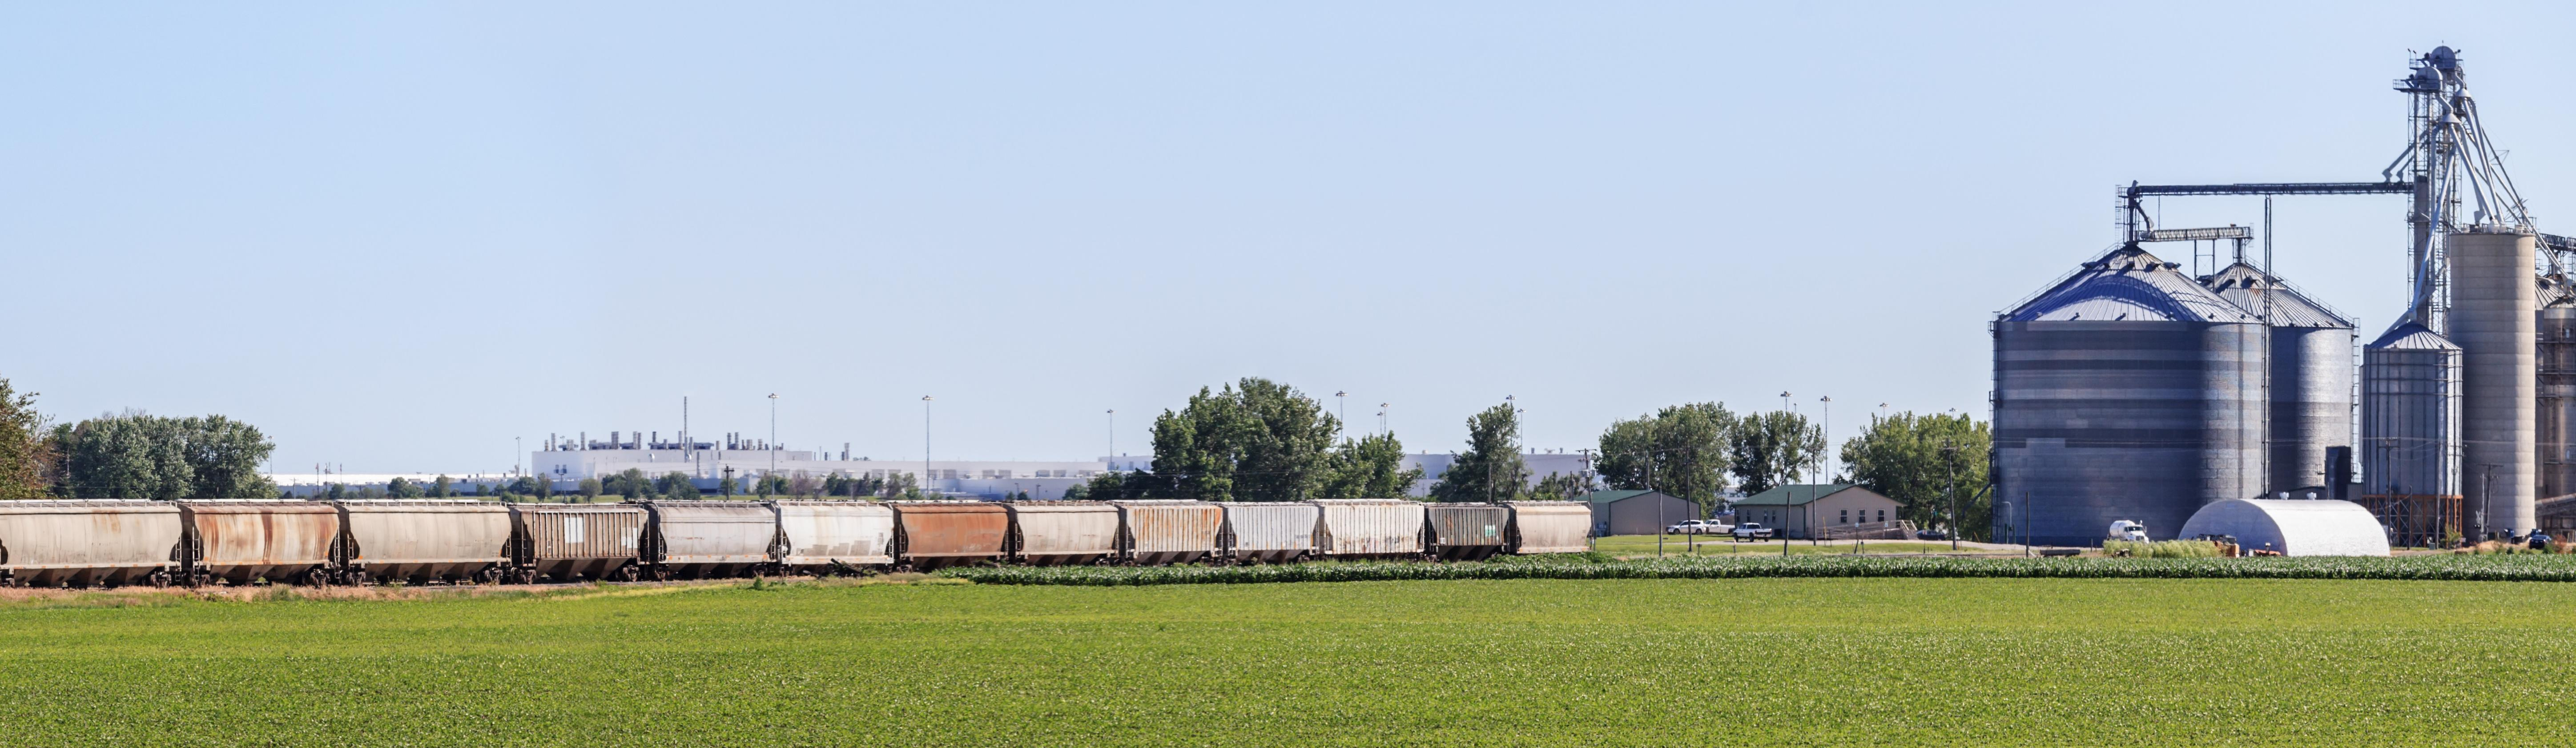 rail cars taking grain from an elevator